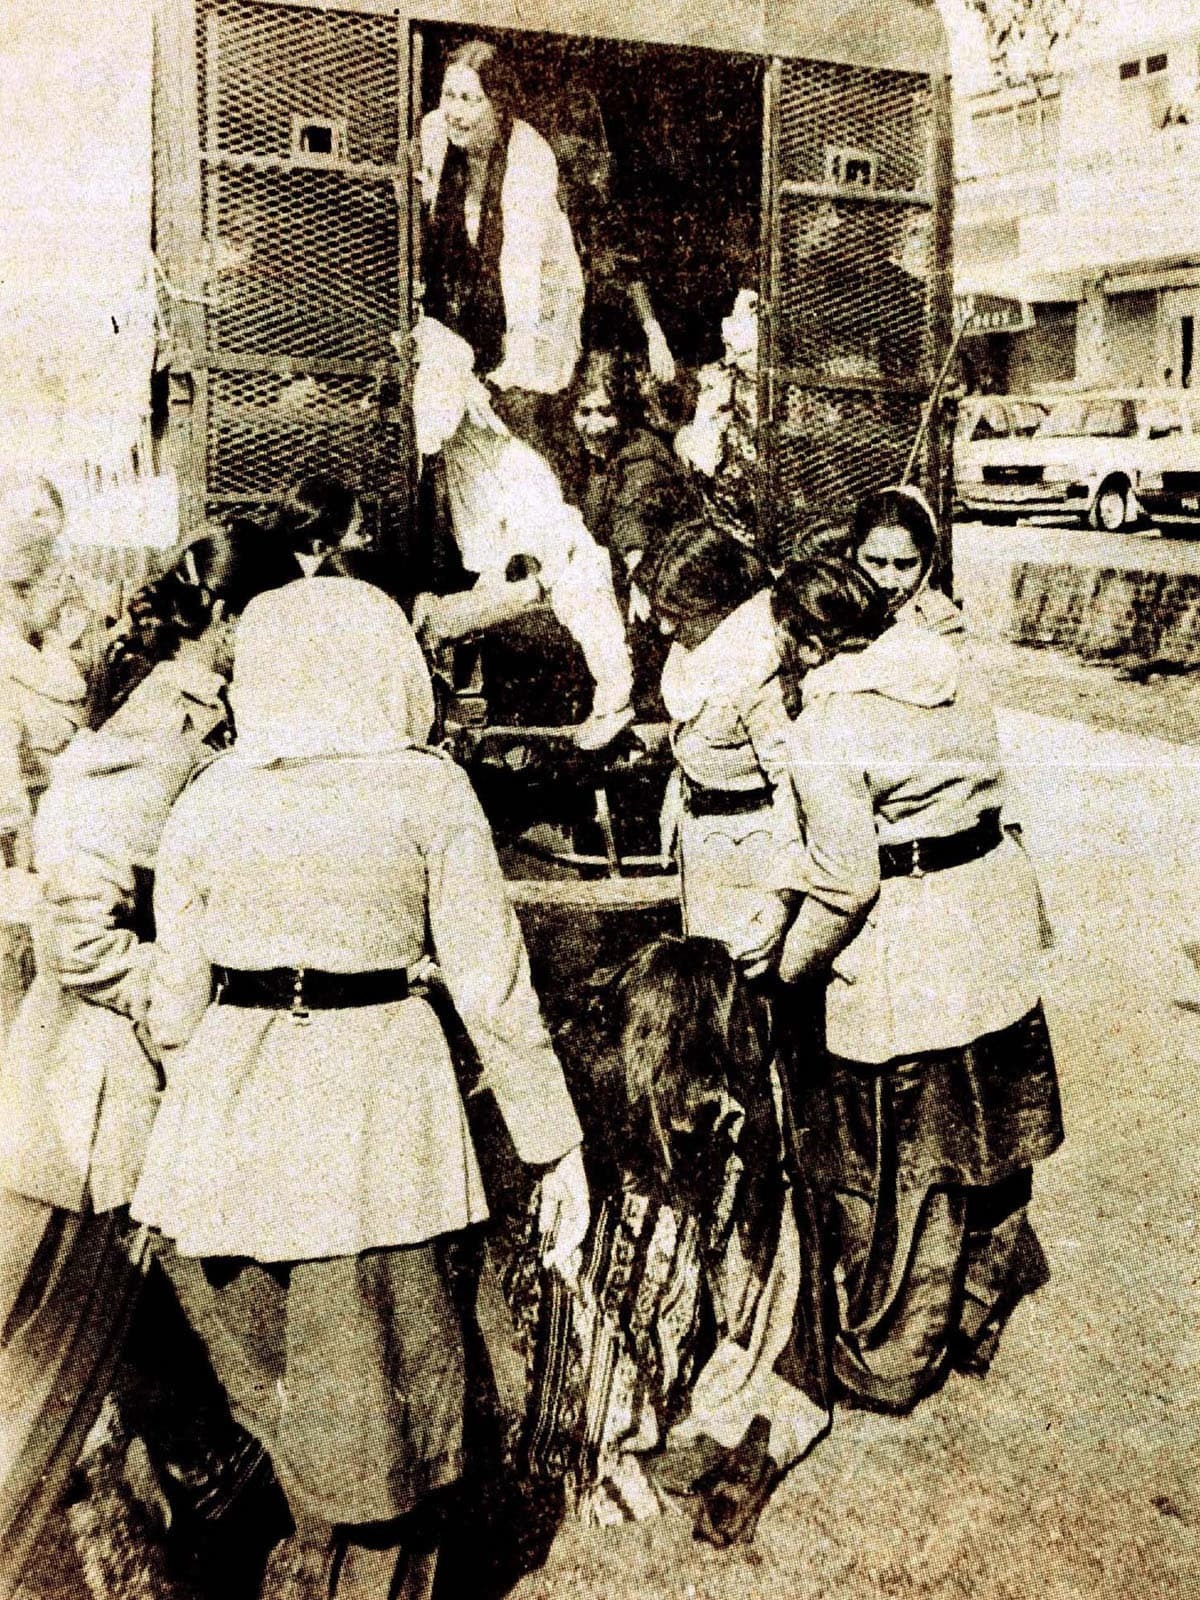 Female protesters being arrested during Zia's regime. Credit: Herald archives